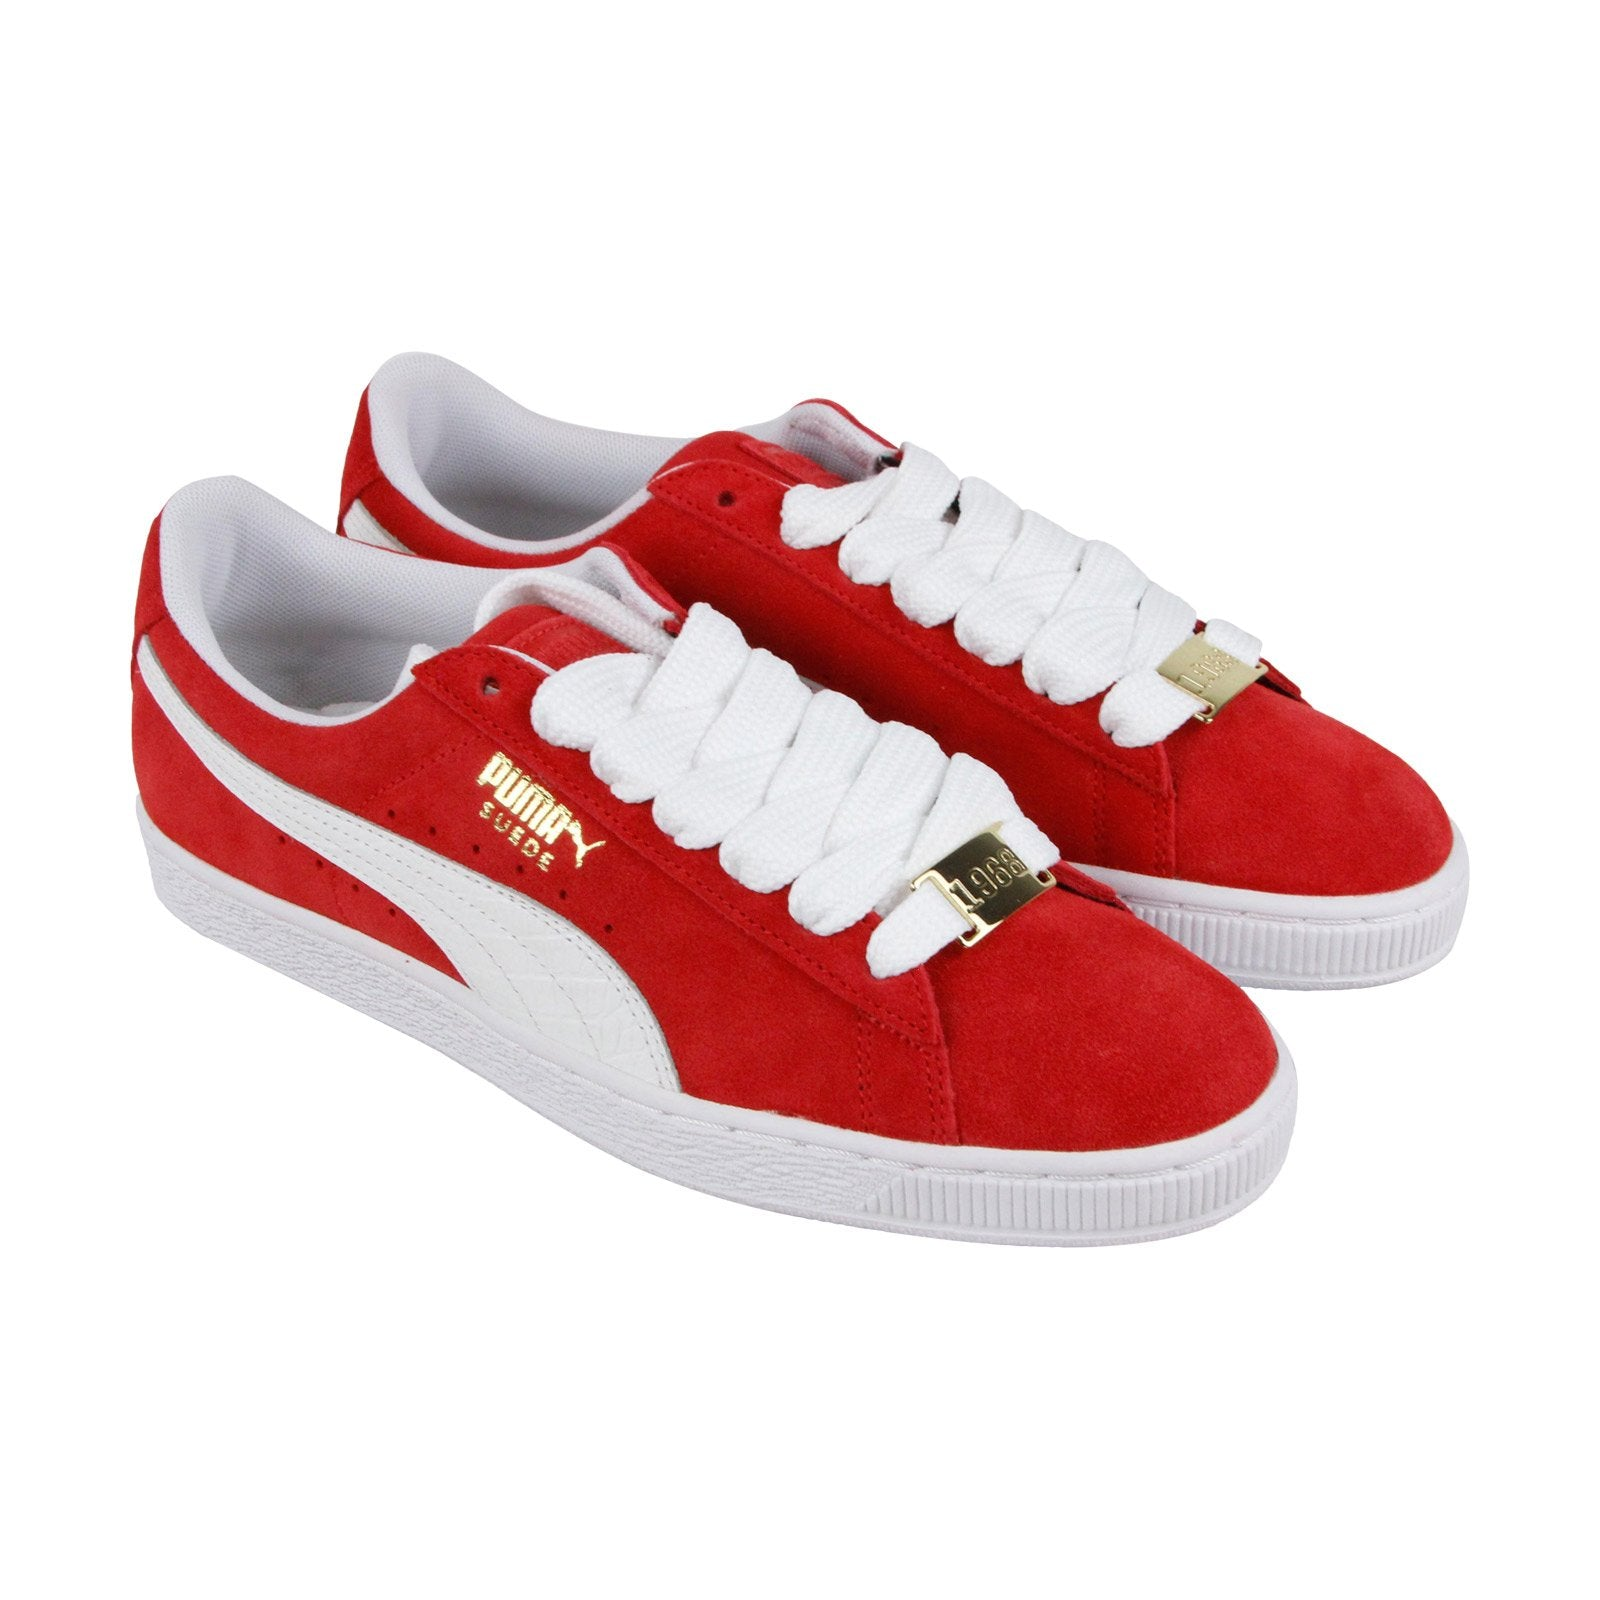 lowest price 1bd8f 55019 Puma Suede Classic B.Boy Fabulous Mens Red Suede Lace Up Sneakers Shoes